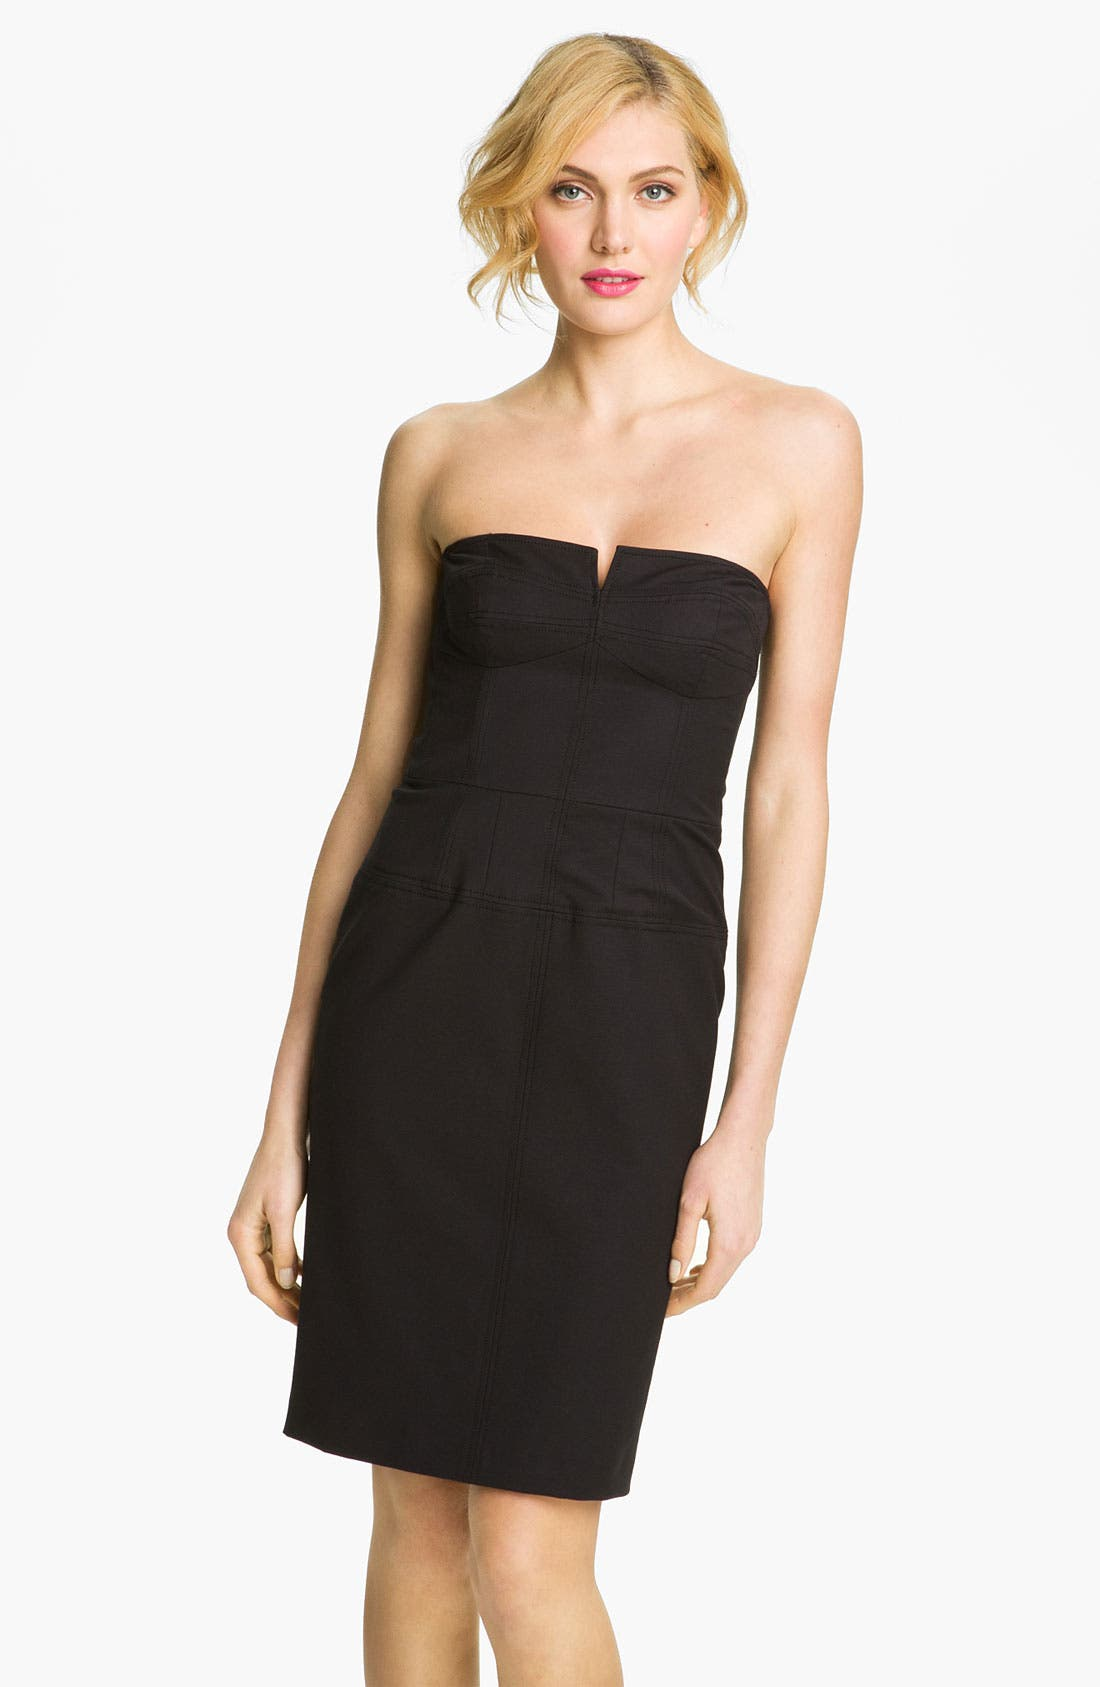 Alternate Image 1 Selected - French Connection 'Days of Winter' Strapless Sheath Dress